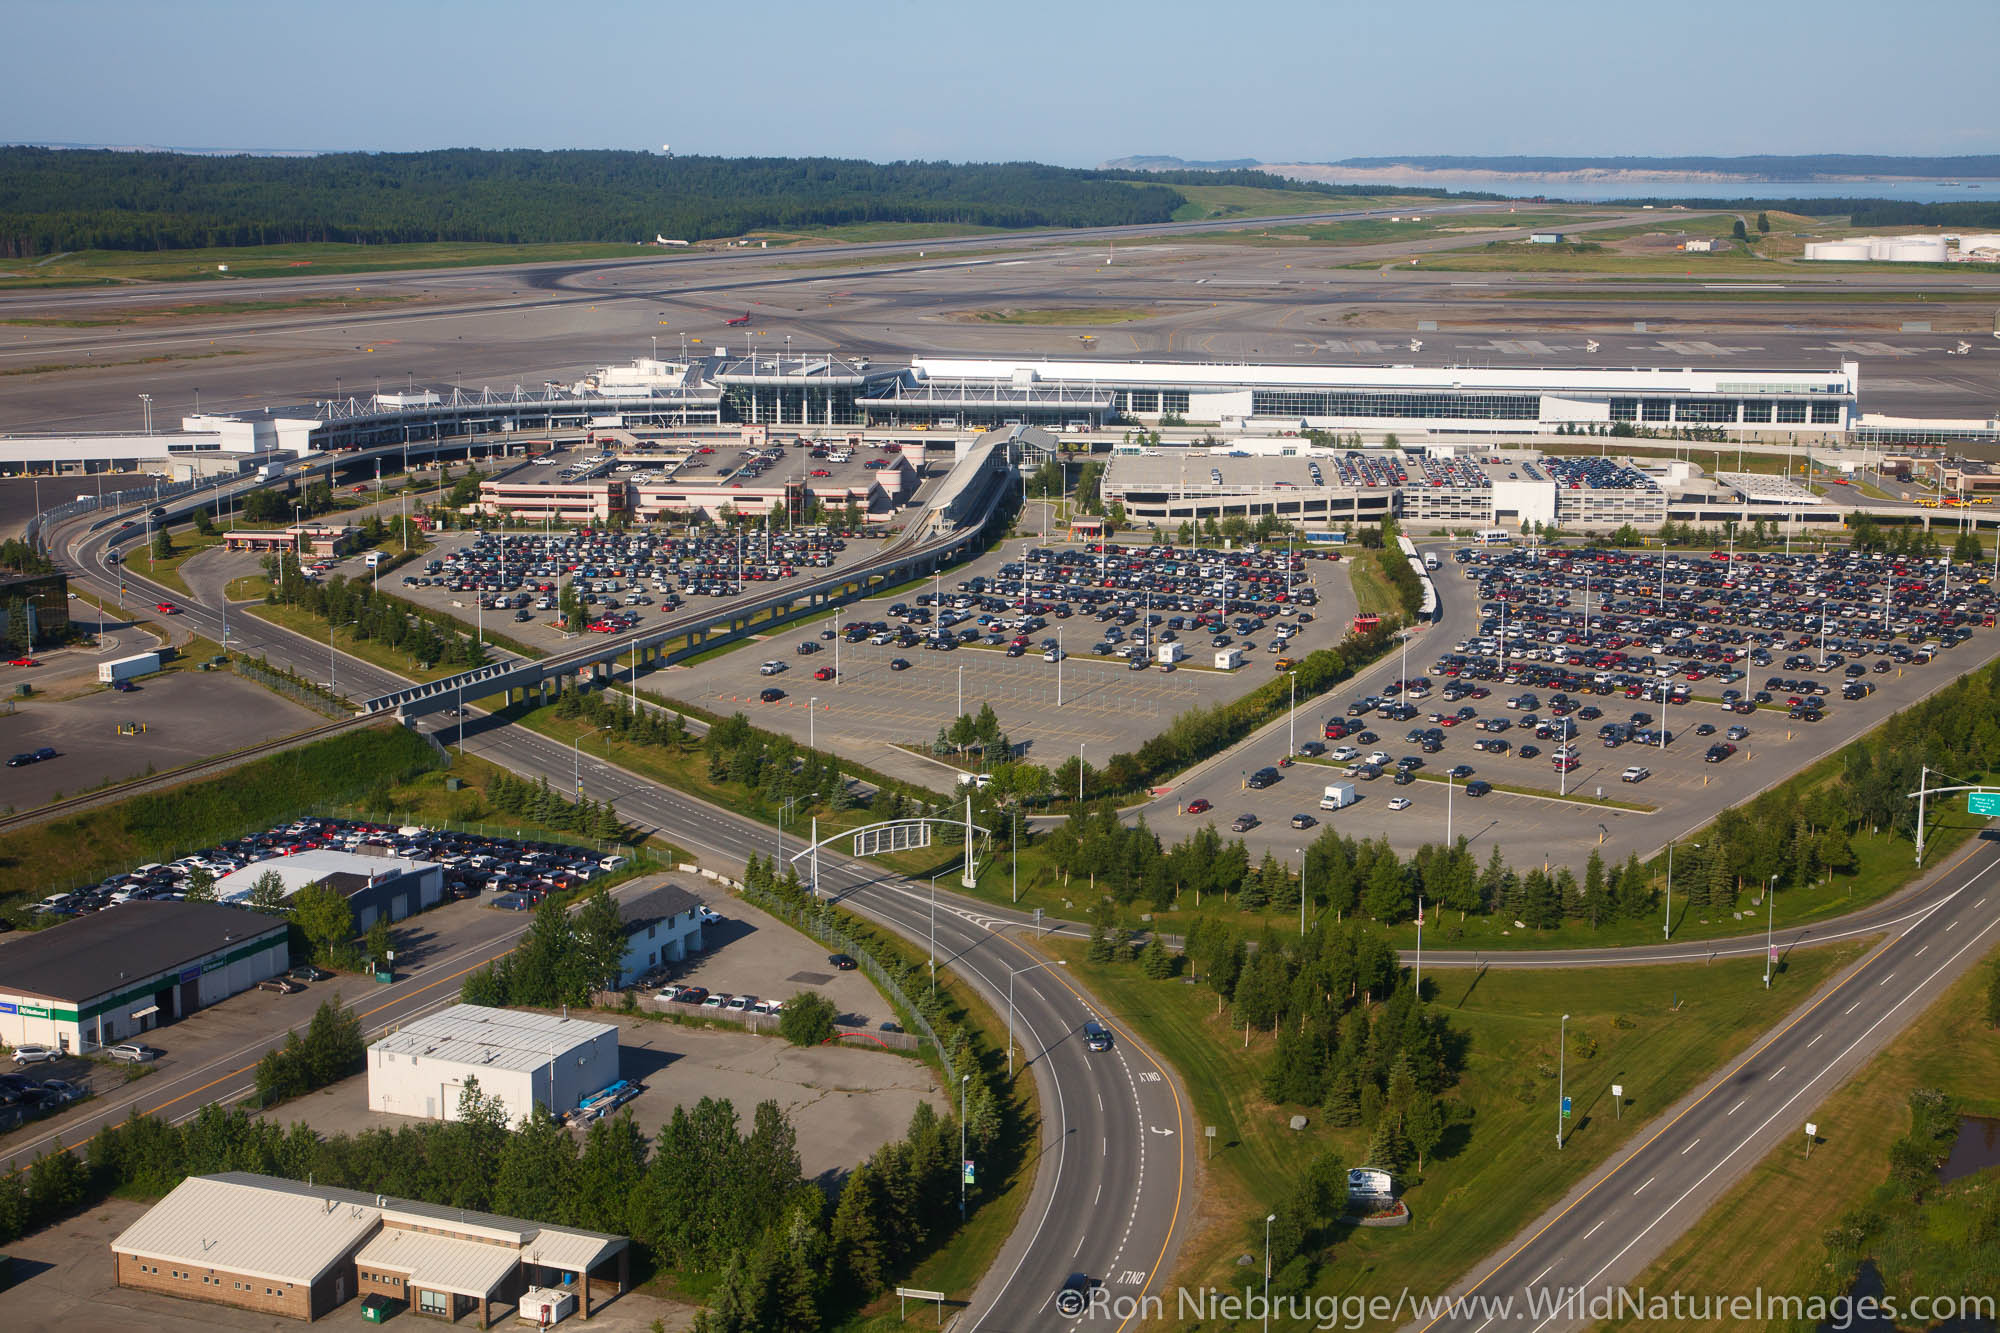 Aerial view of Ted Stevens International Airport, Anchorage, Alaska.